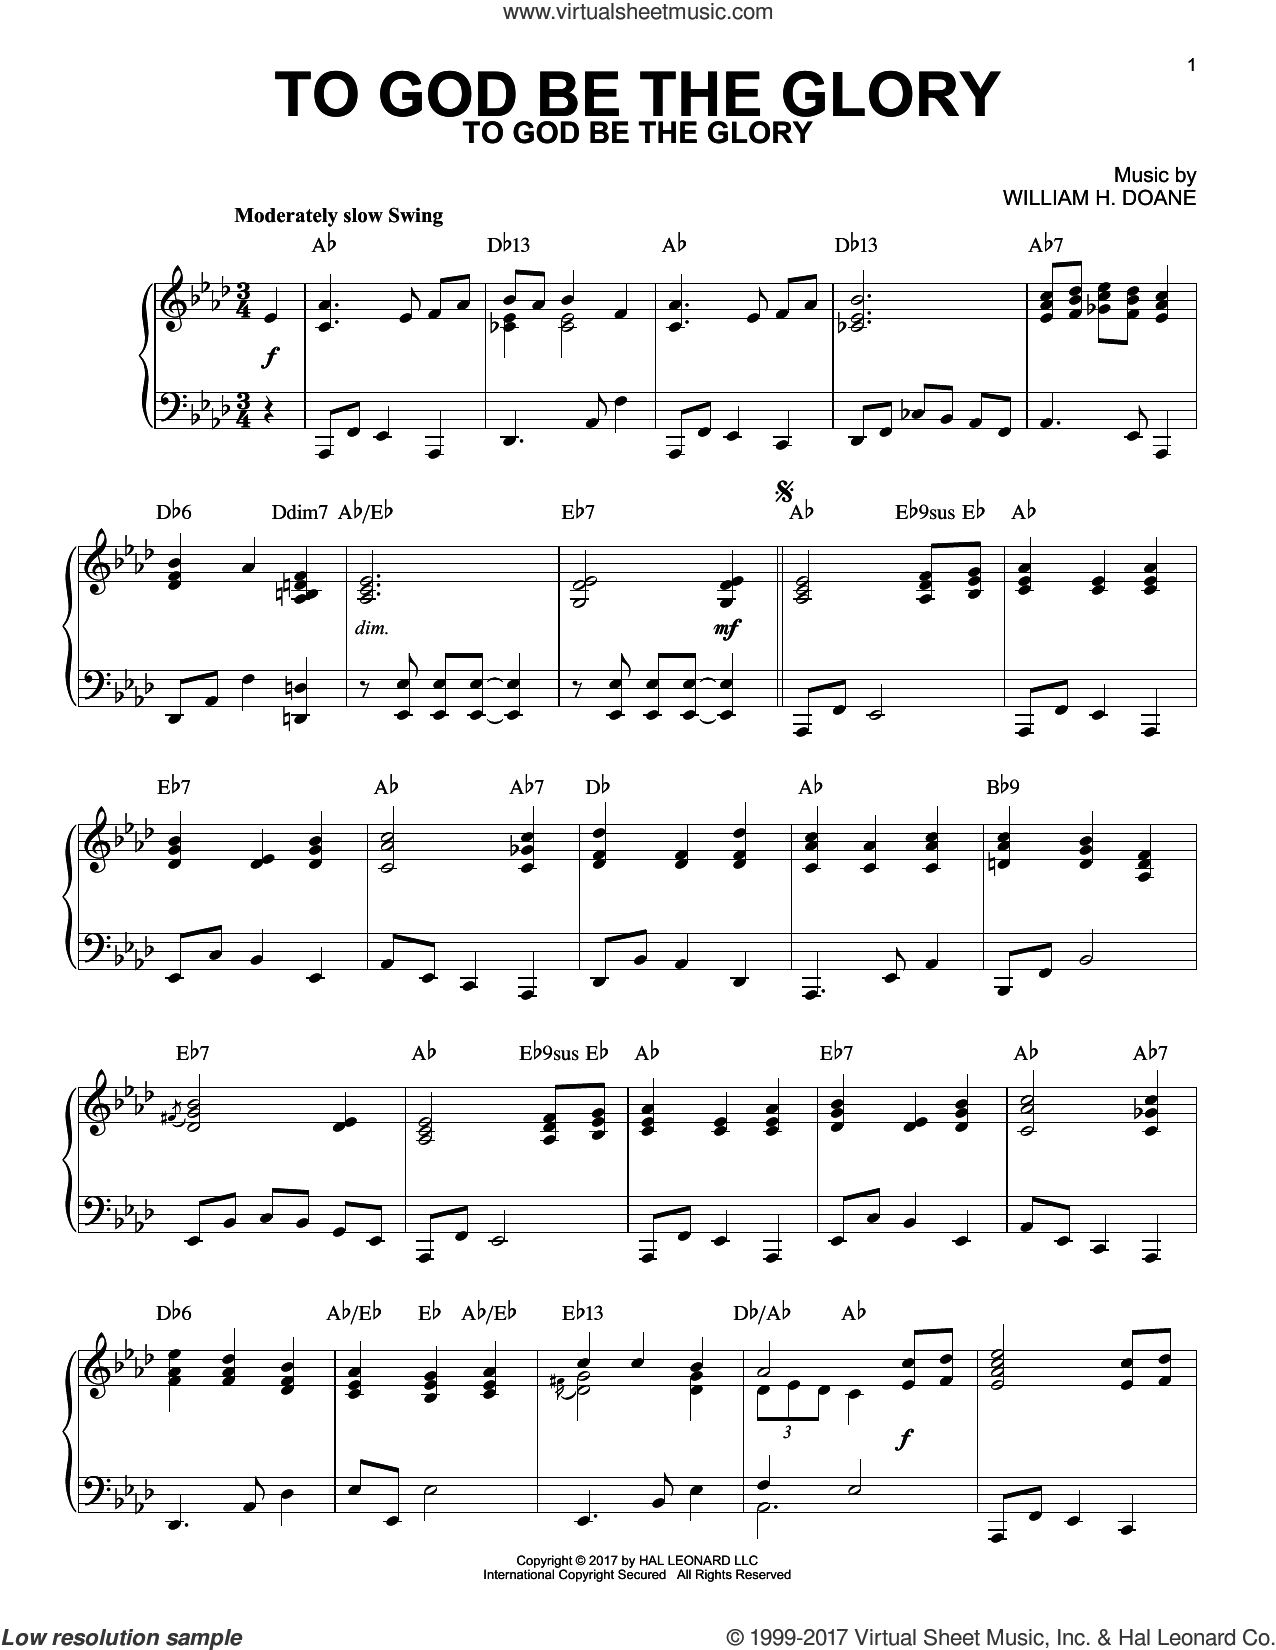 To God Be The Glory [Jazz version] sheet music for piano solo by Fanny J. Crosby and William H. Doane, intermediate skill level